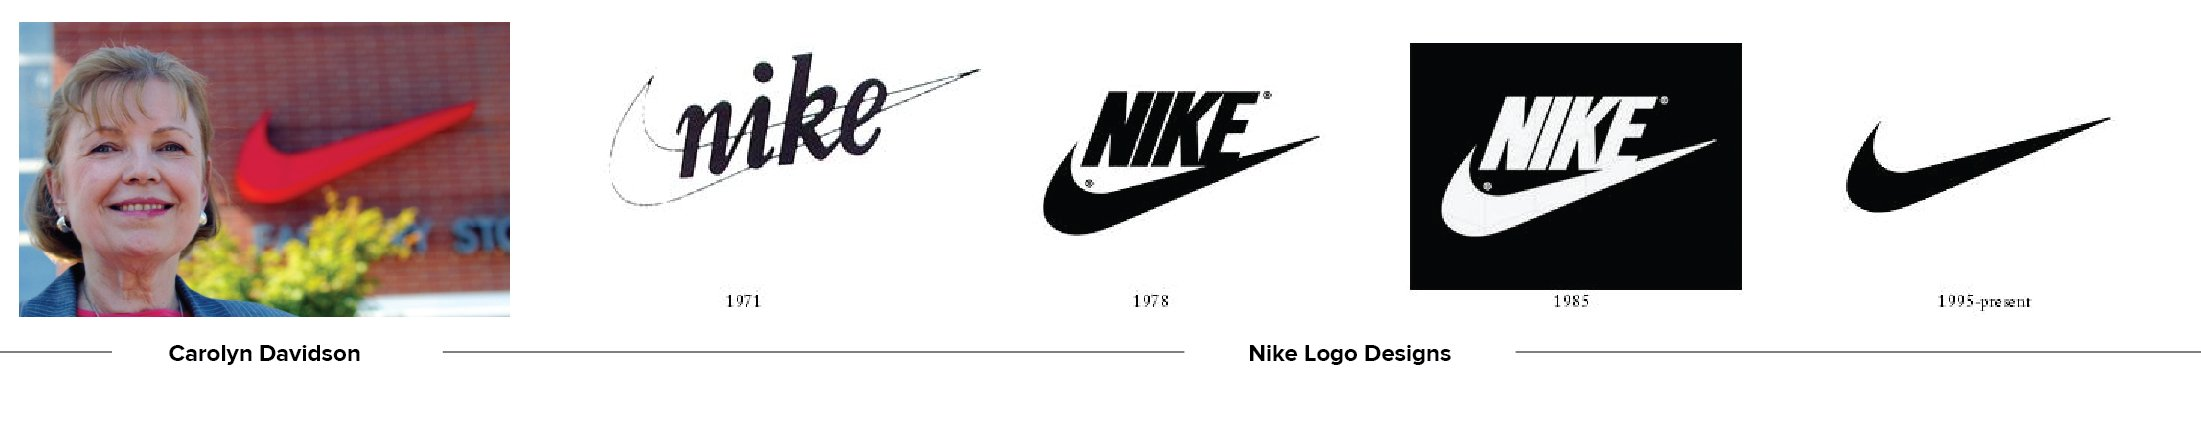 Evolution of the Nike Swoosh Logo